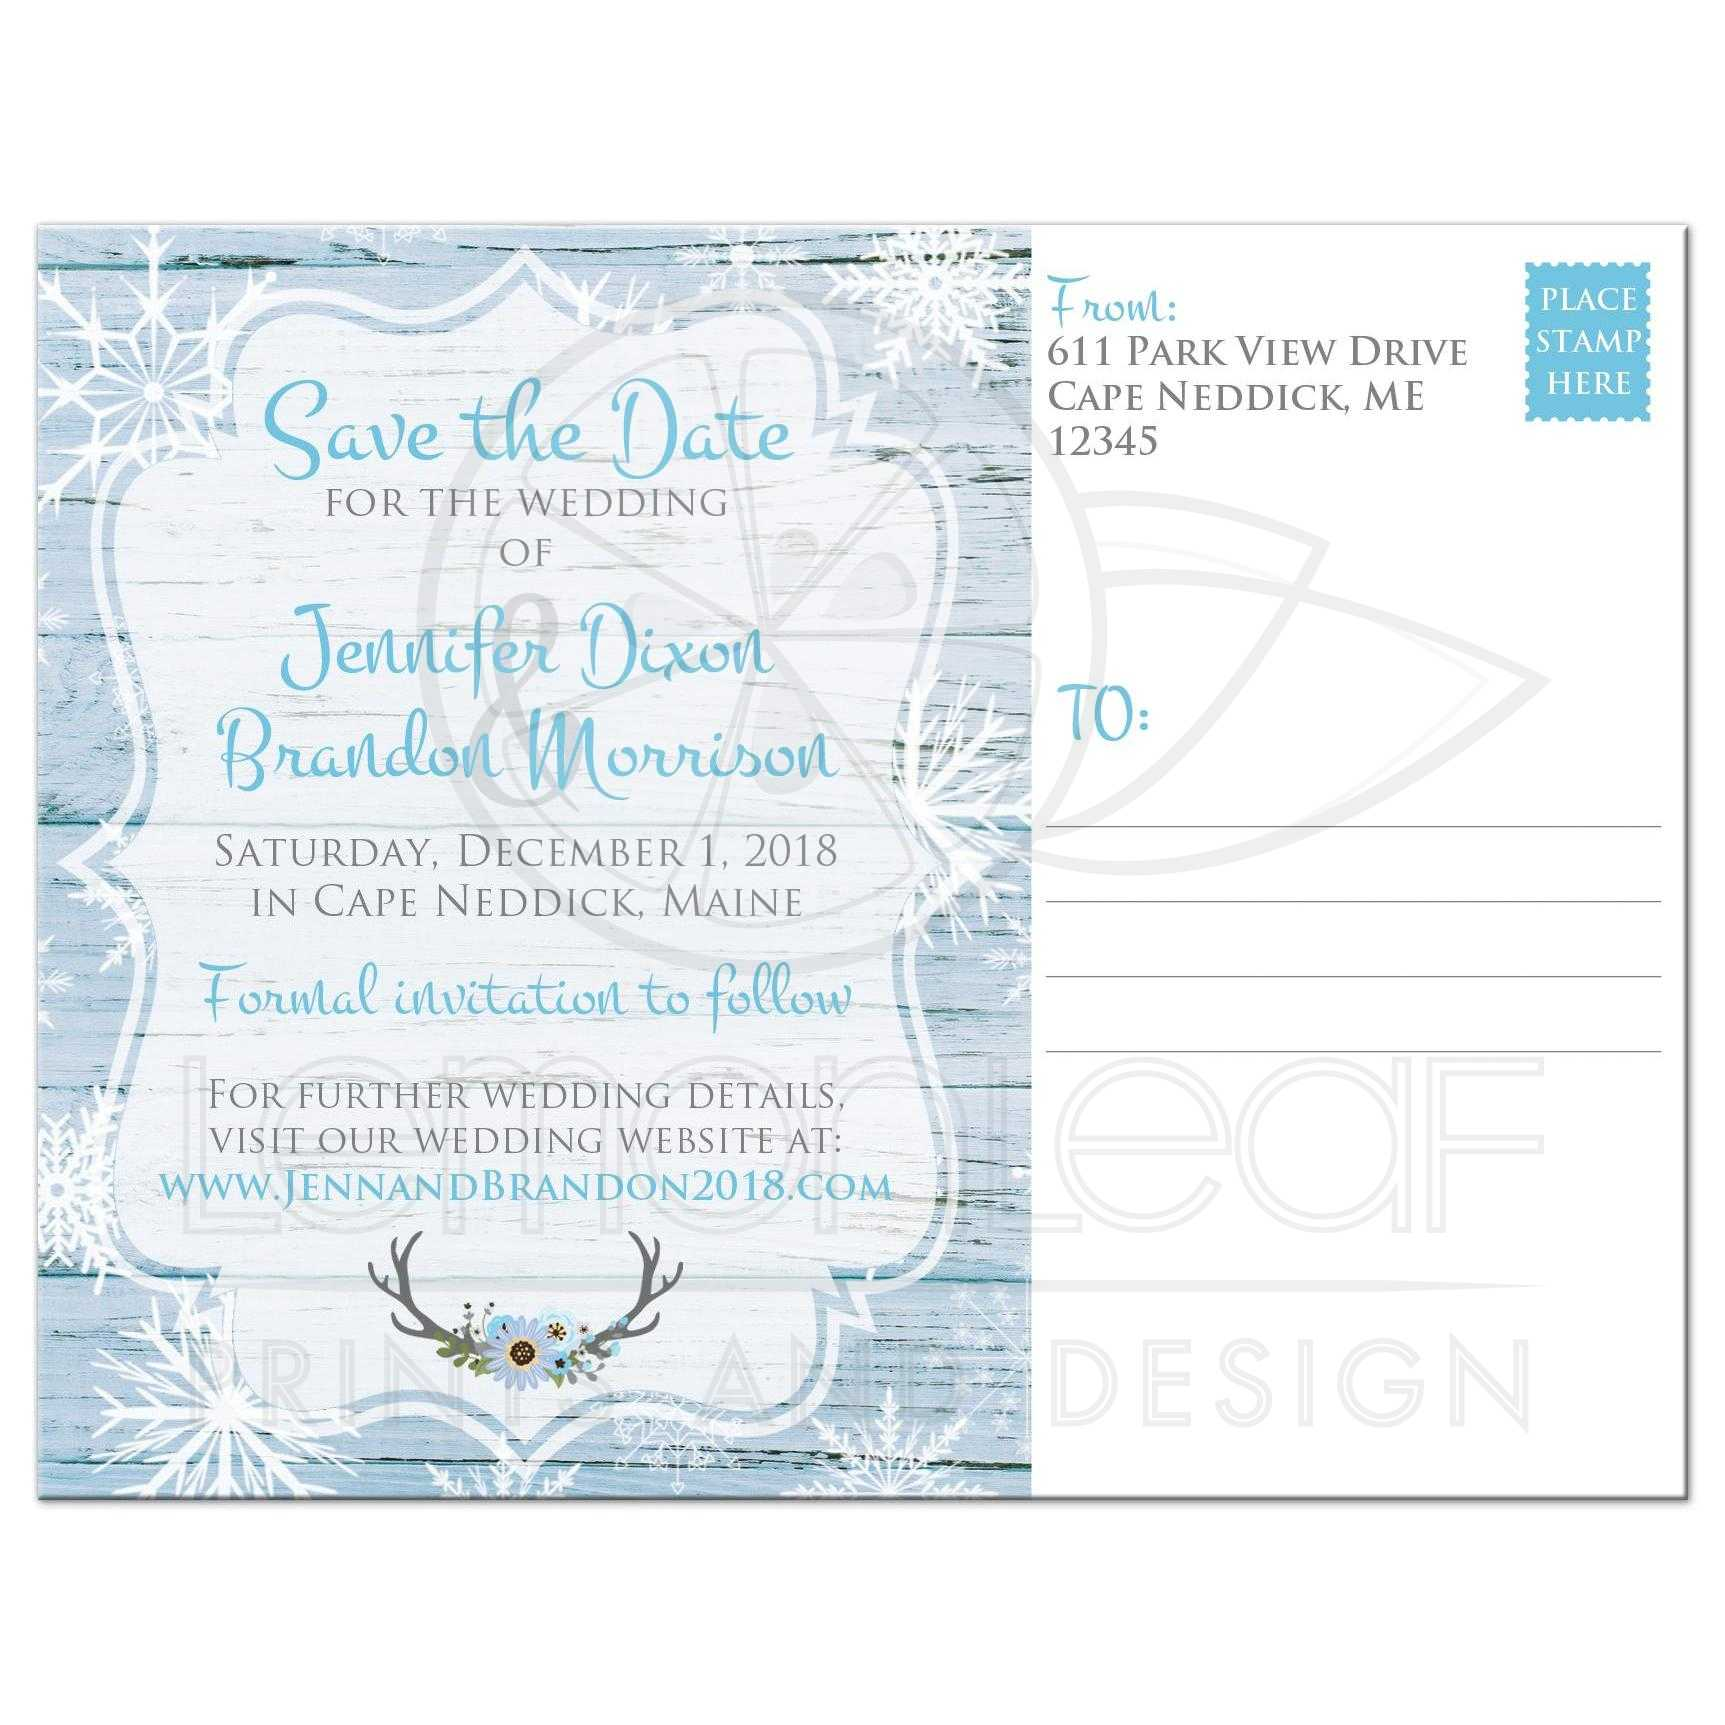 Boho Chic Rustic Winter Wedding Save the Date Calendar Post Card – Winter Wedding Save the Date